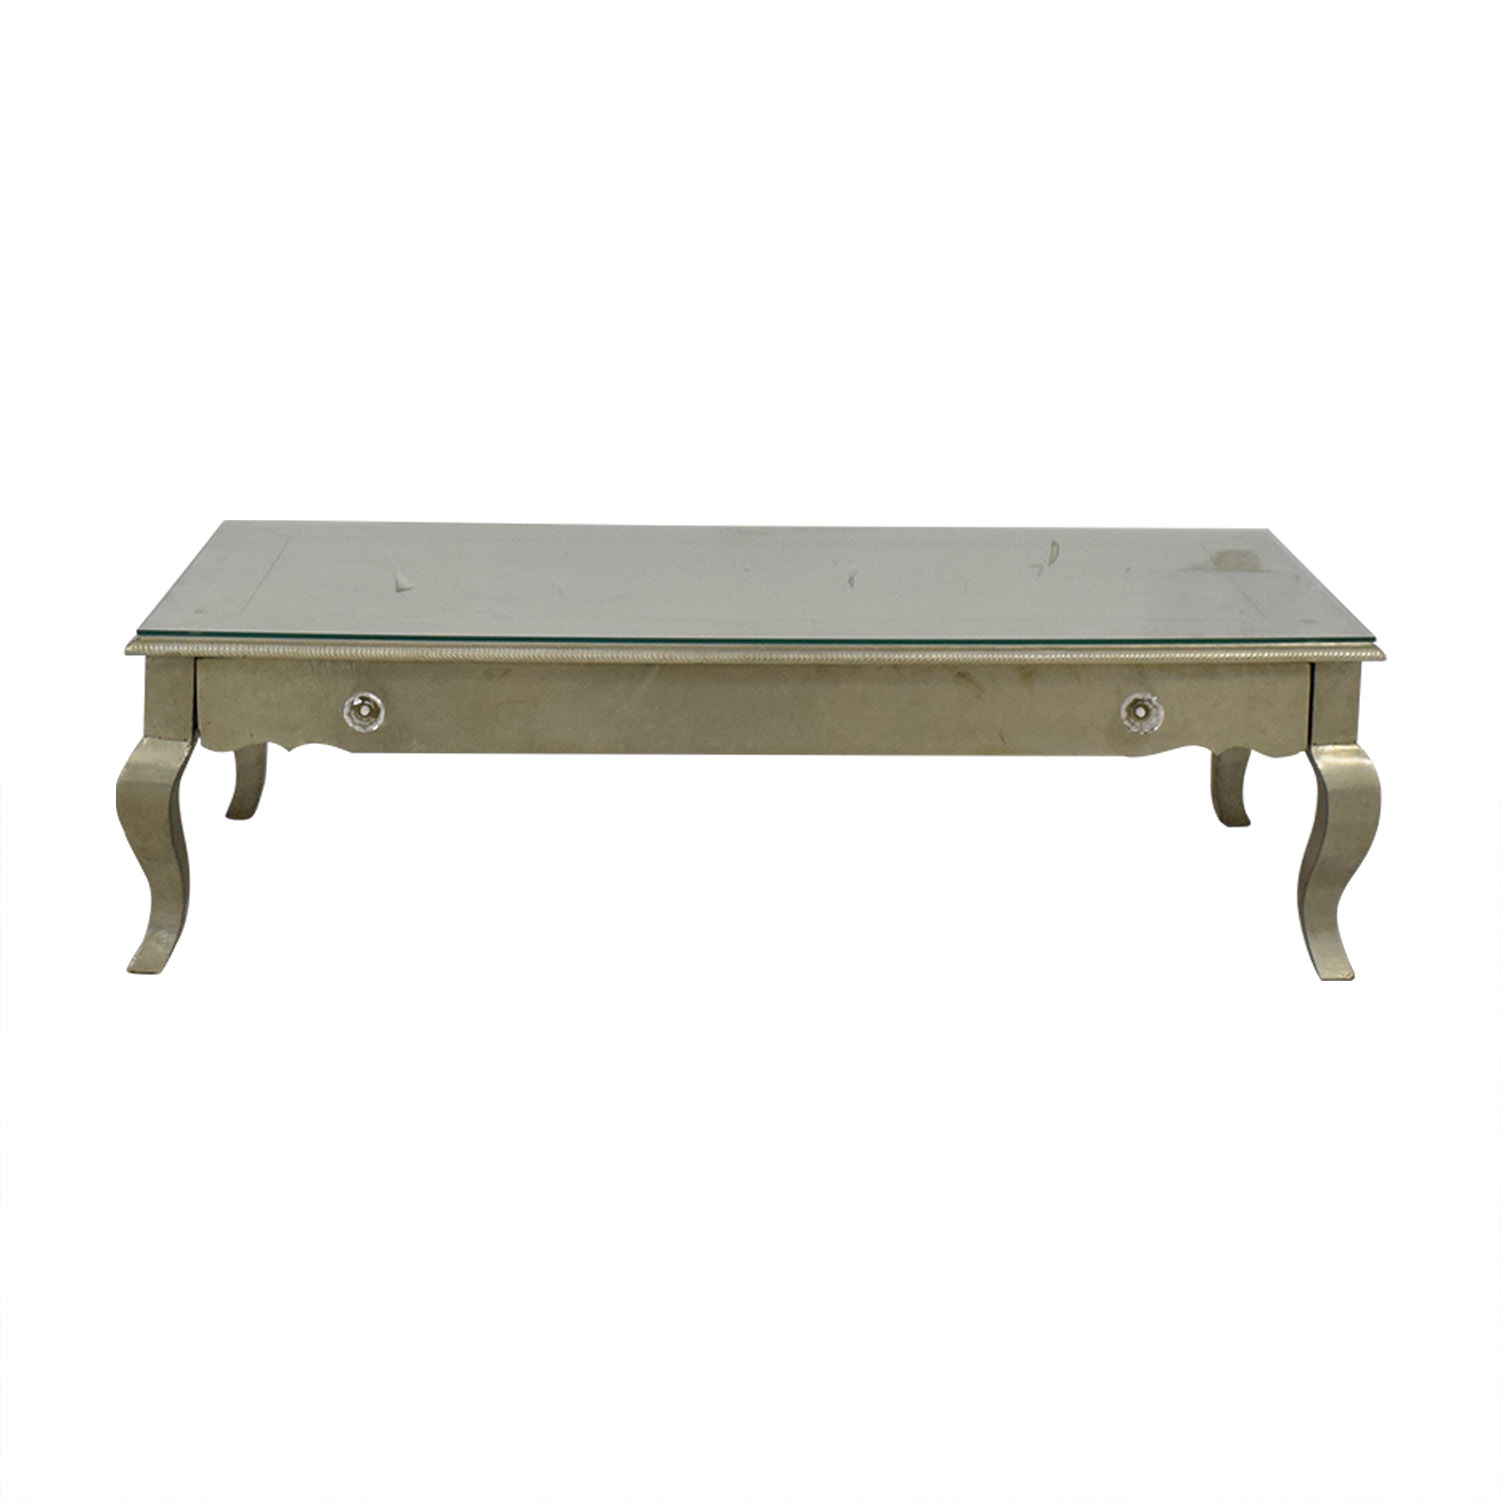 ABC Carpet & Home ABC Carpet & Home Coffee Table on sale